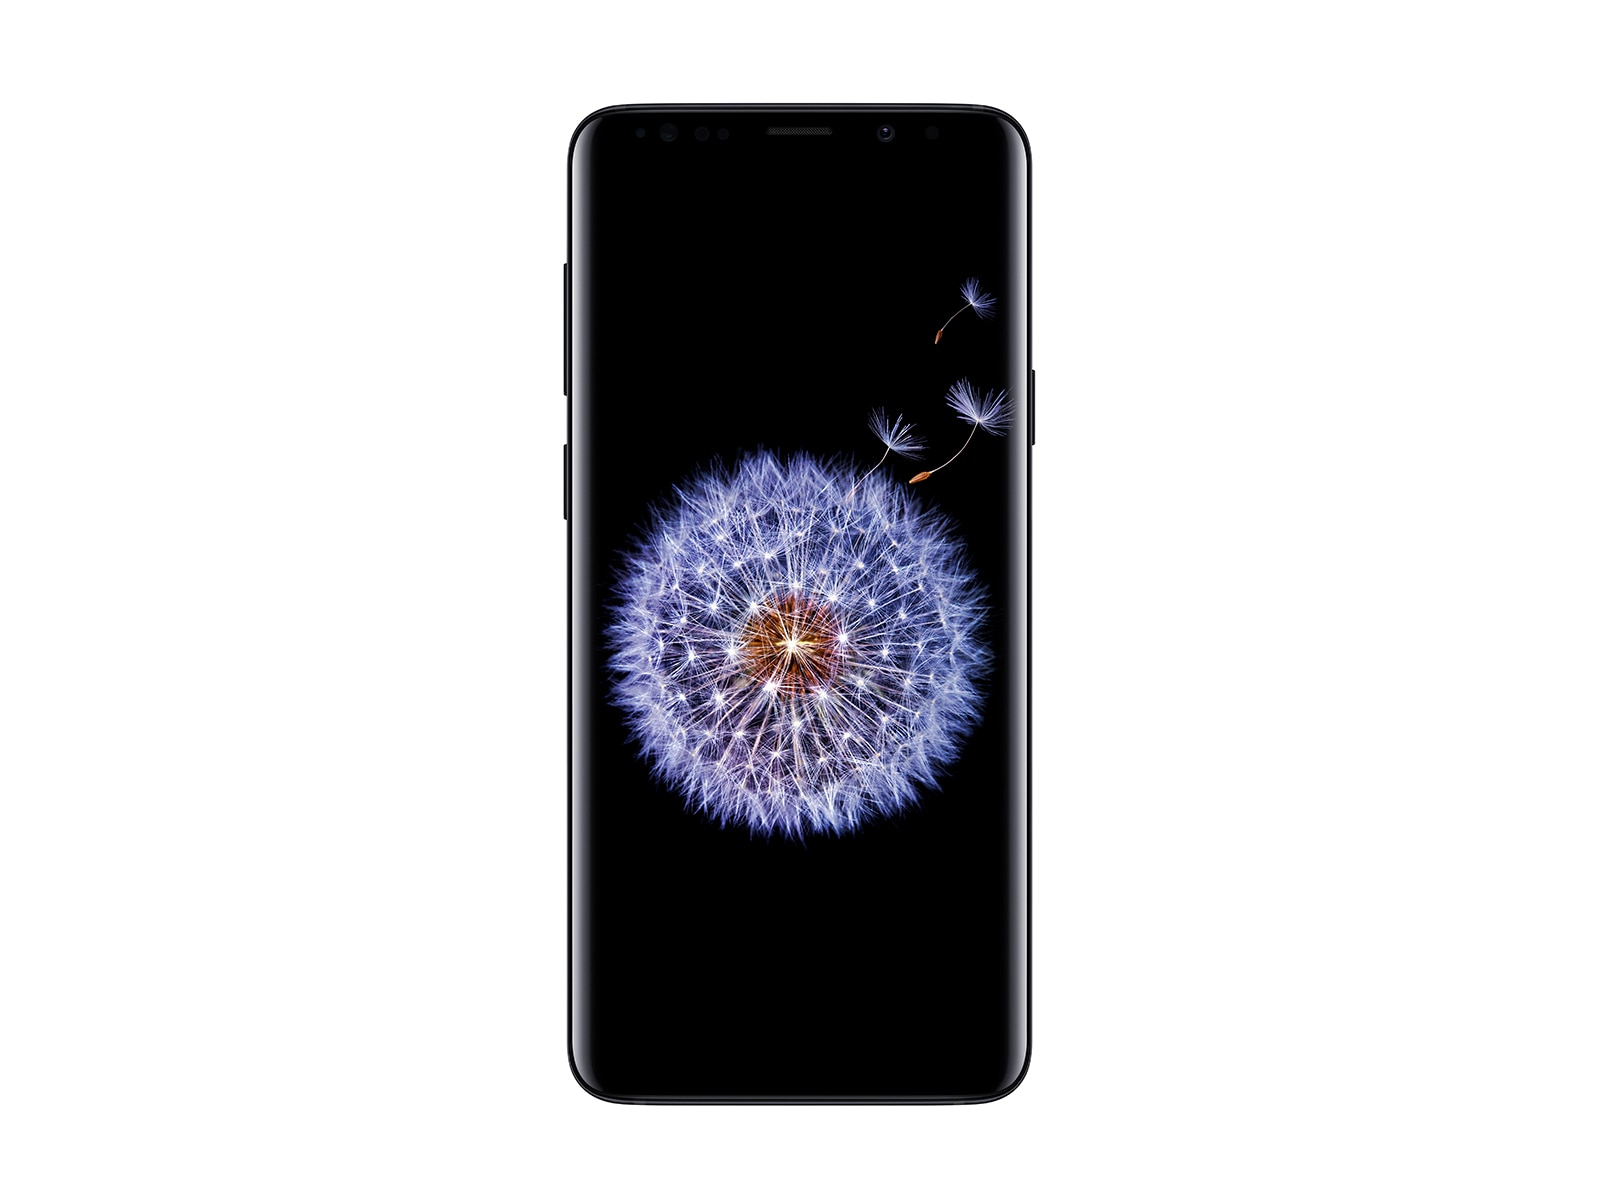 هل اختلف هاتف Samsung Galaxy S10 Plus عن هاتف Samsung Galaxy S9 Plus